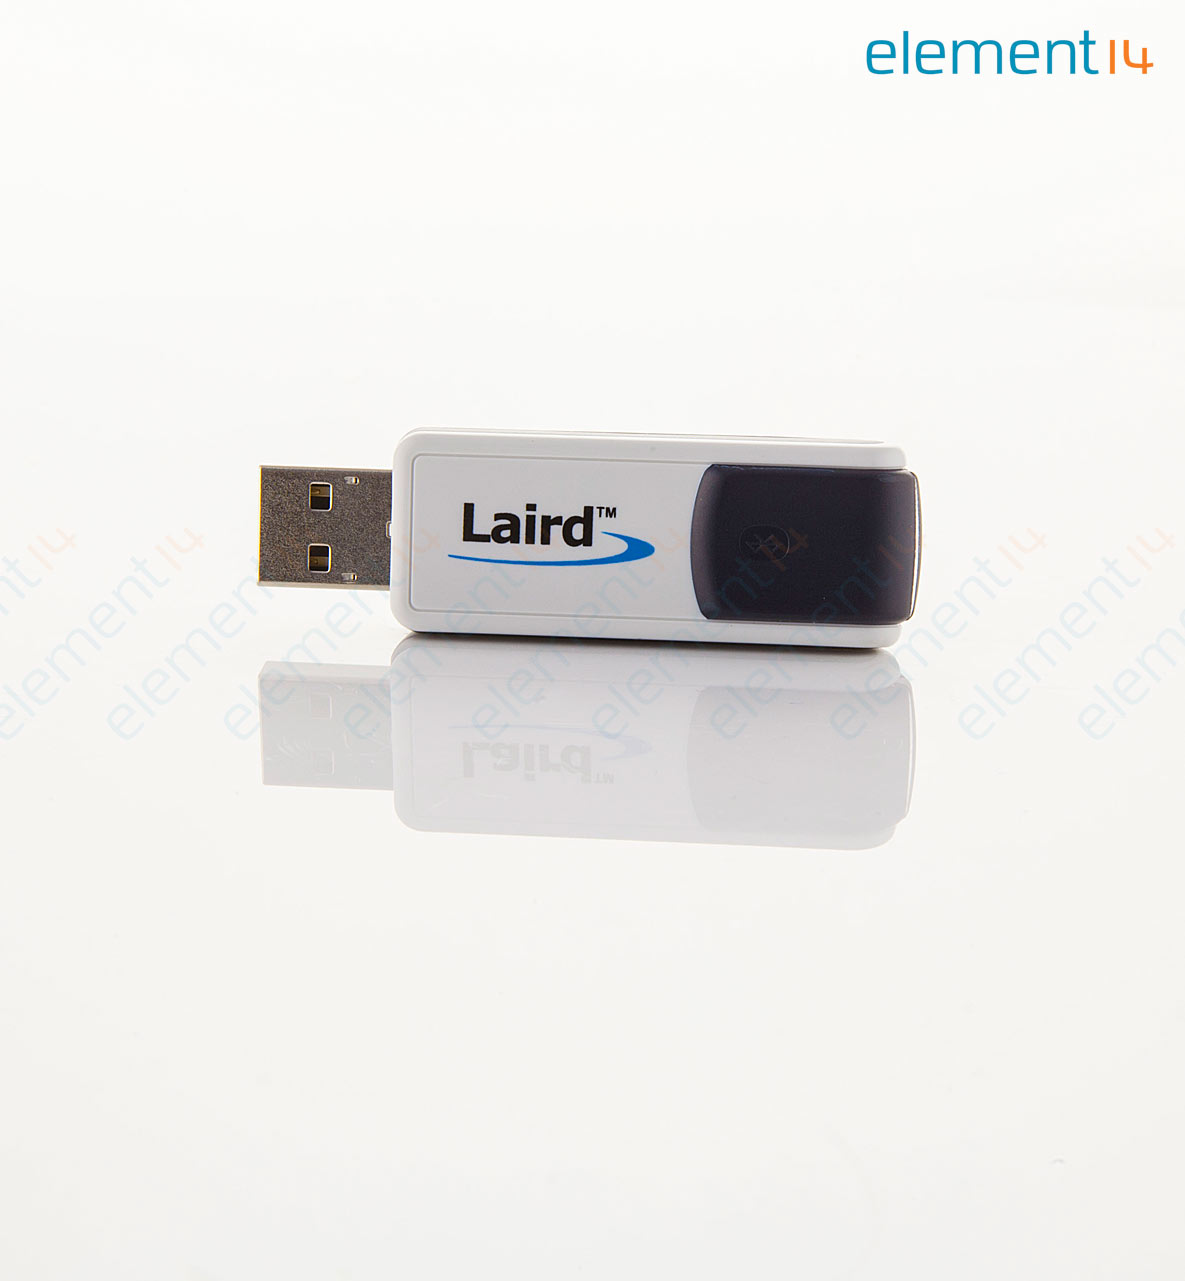 Brblu03 010a0 03 Laird High Speed Bluetooth V20 Usb Adapter 24 Electronics Learning Circuits Webonly Products Technology Add To Compare